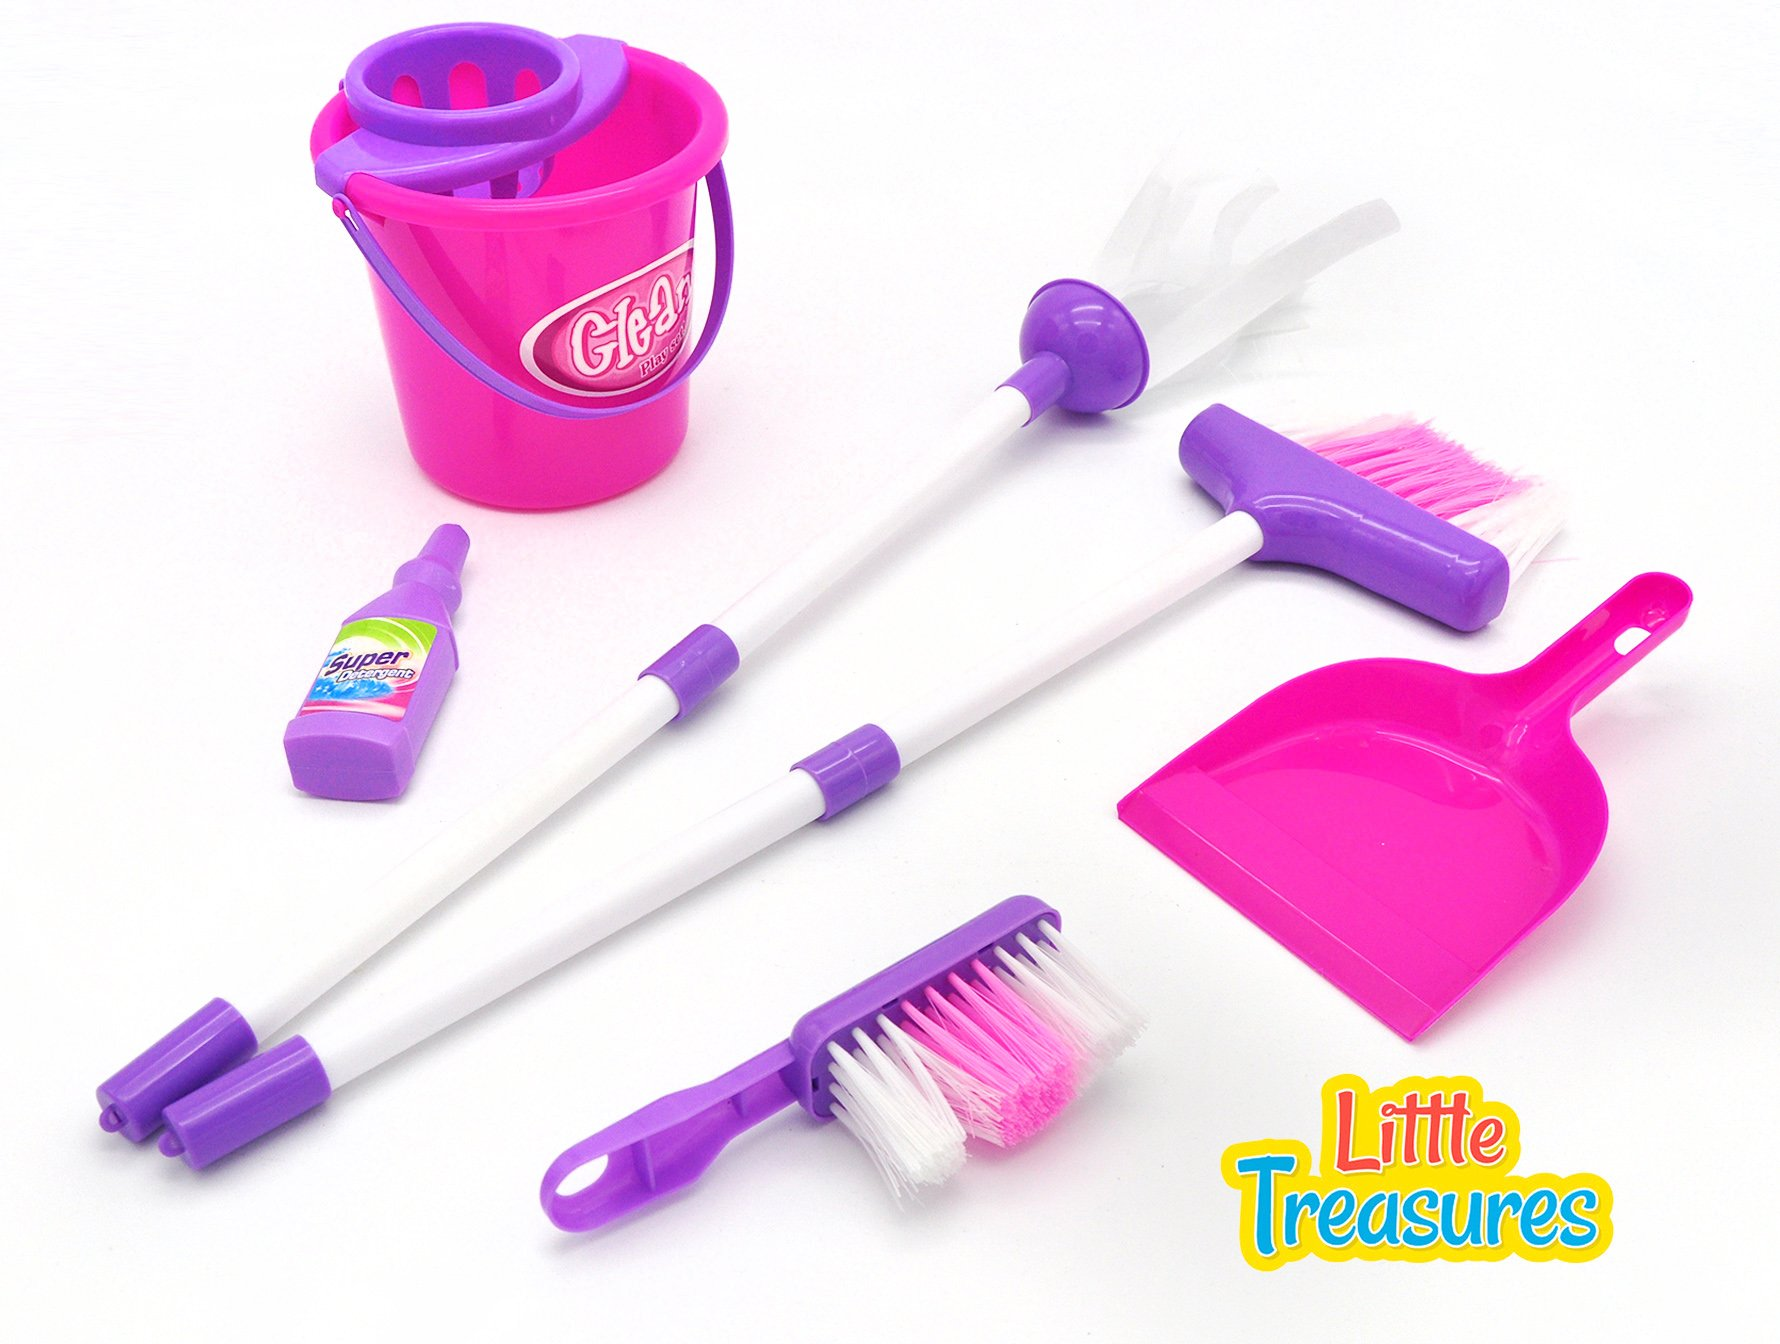 Little Treasures My Little Helper Cleaning Play Set Complete with Small Sized Broom, mop, Bucket, Super Detergent, Hand-Broom and Dustpan Play Set for Children Ages 3 by Little Treasures